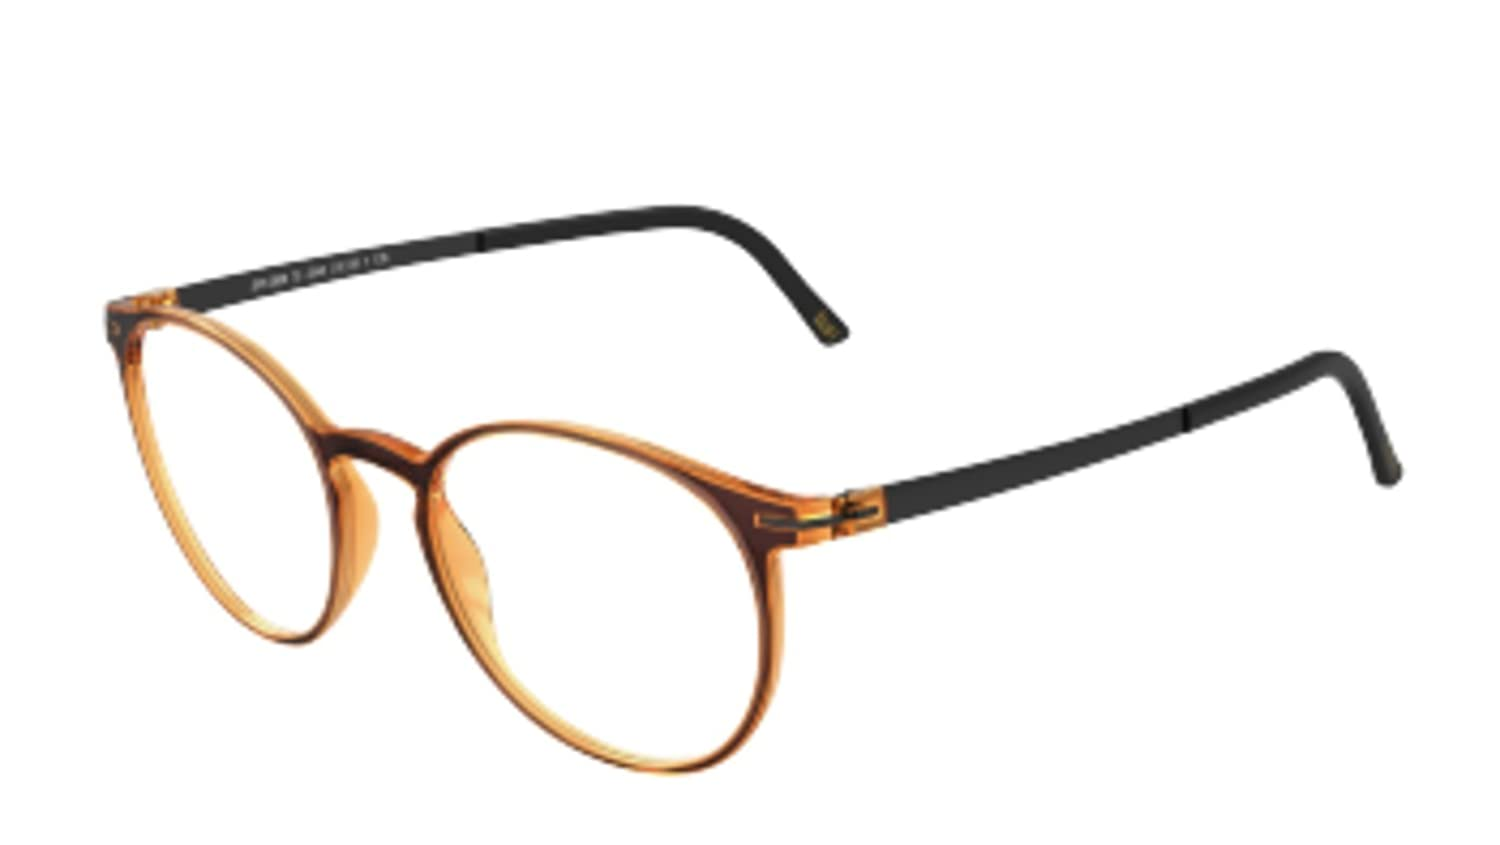 3a848091f923 Eyeglasses Silhouette Titan Accent Full Rim ( 1578 ) 2906 2540 49/18/135 3  piece frame chassis at Amazon Men's Clothing store: